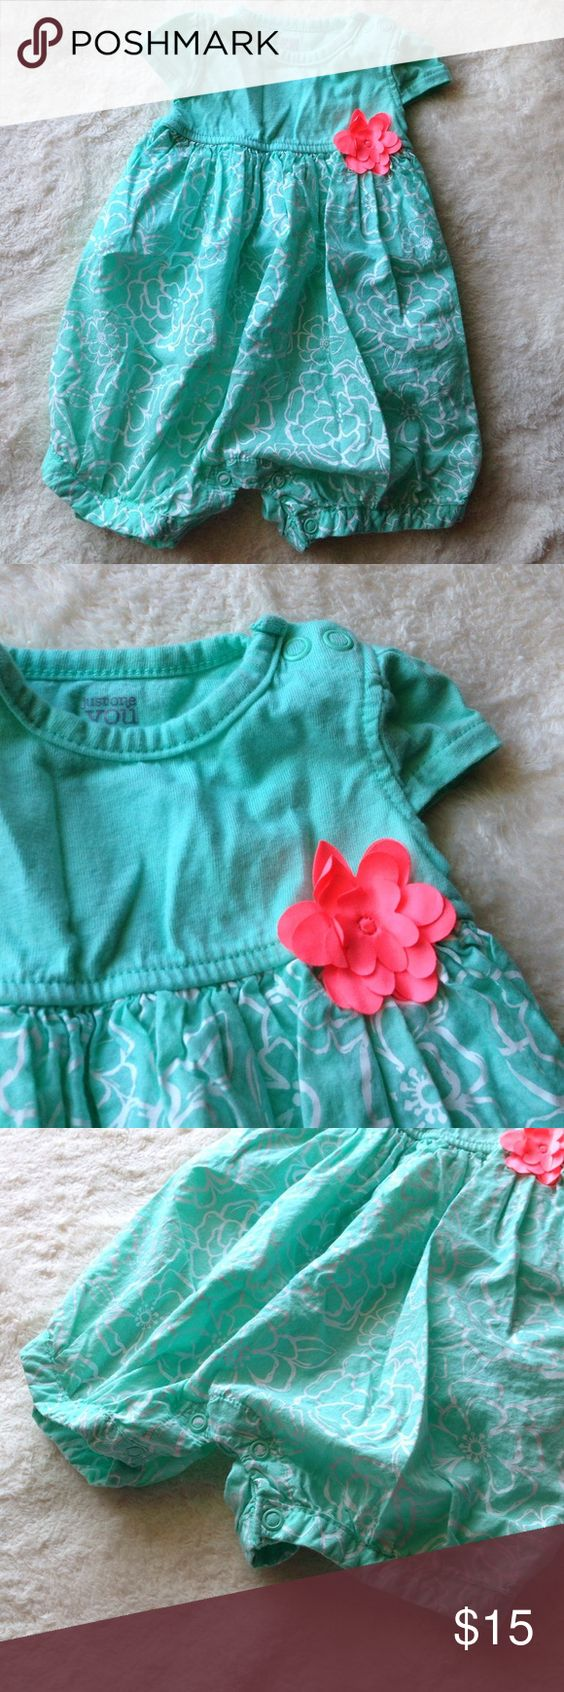 Mint outfit with coral flower So cute outfit. Worn once. No stains or holes. Carter's One Pieces